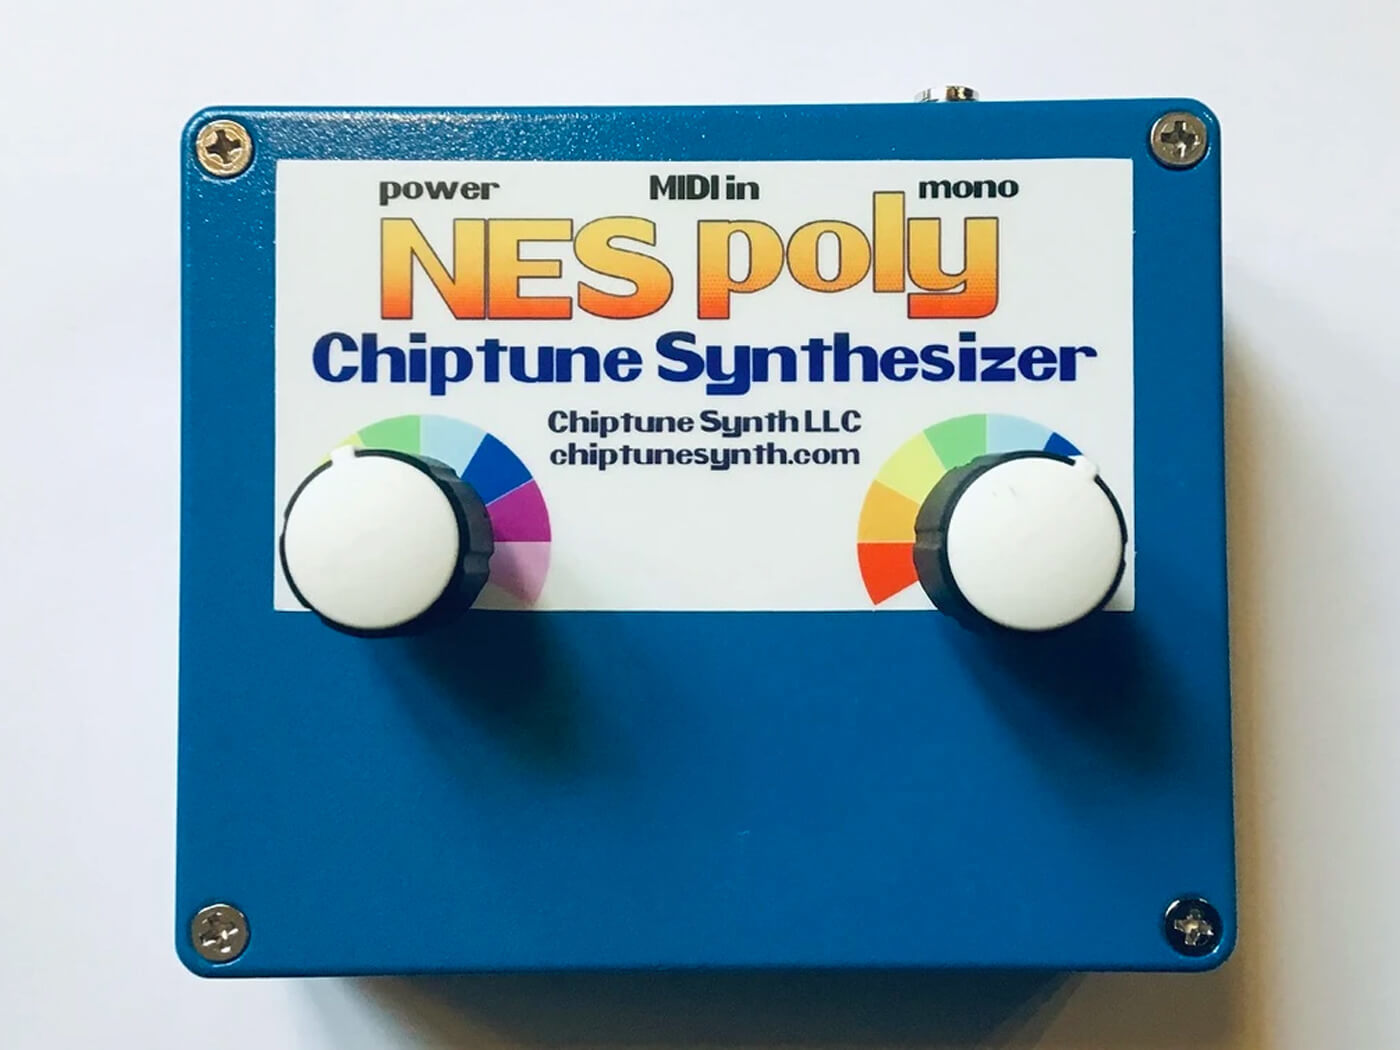 Chiptune synth llc nes poly 1400x1050